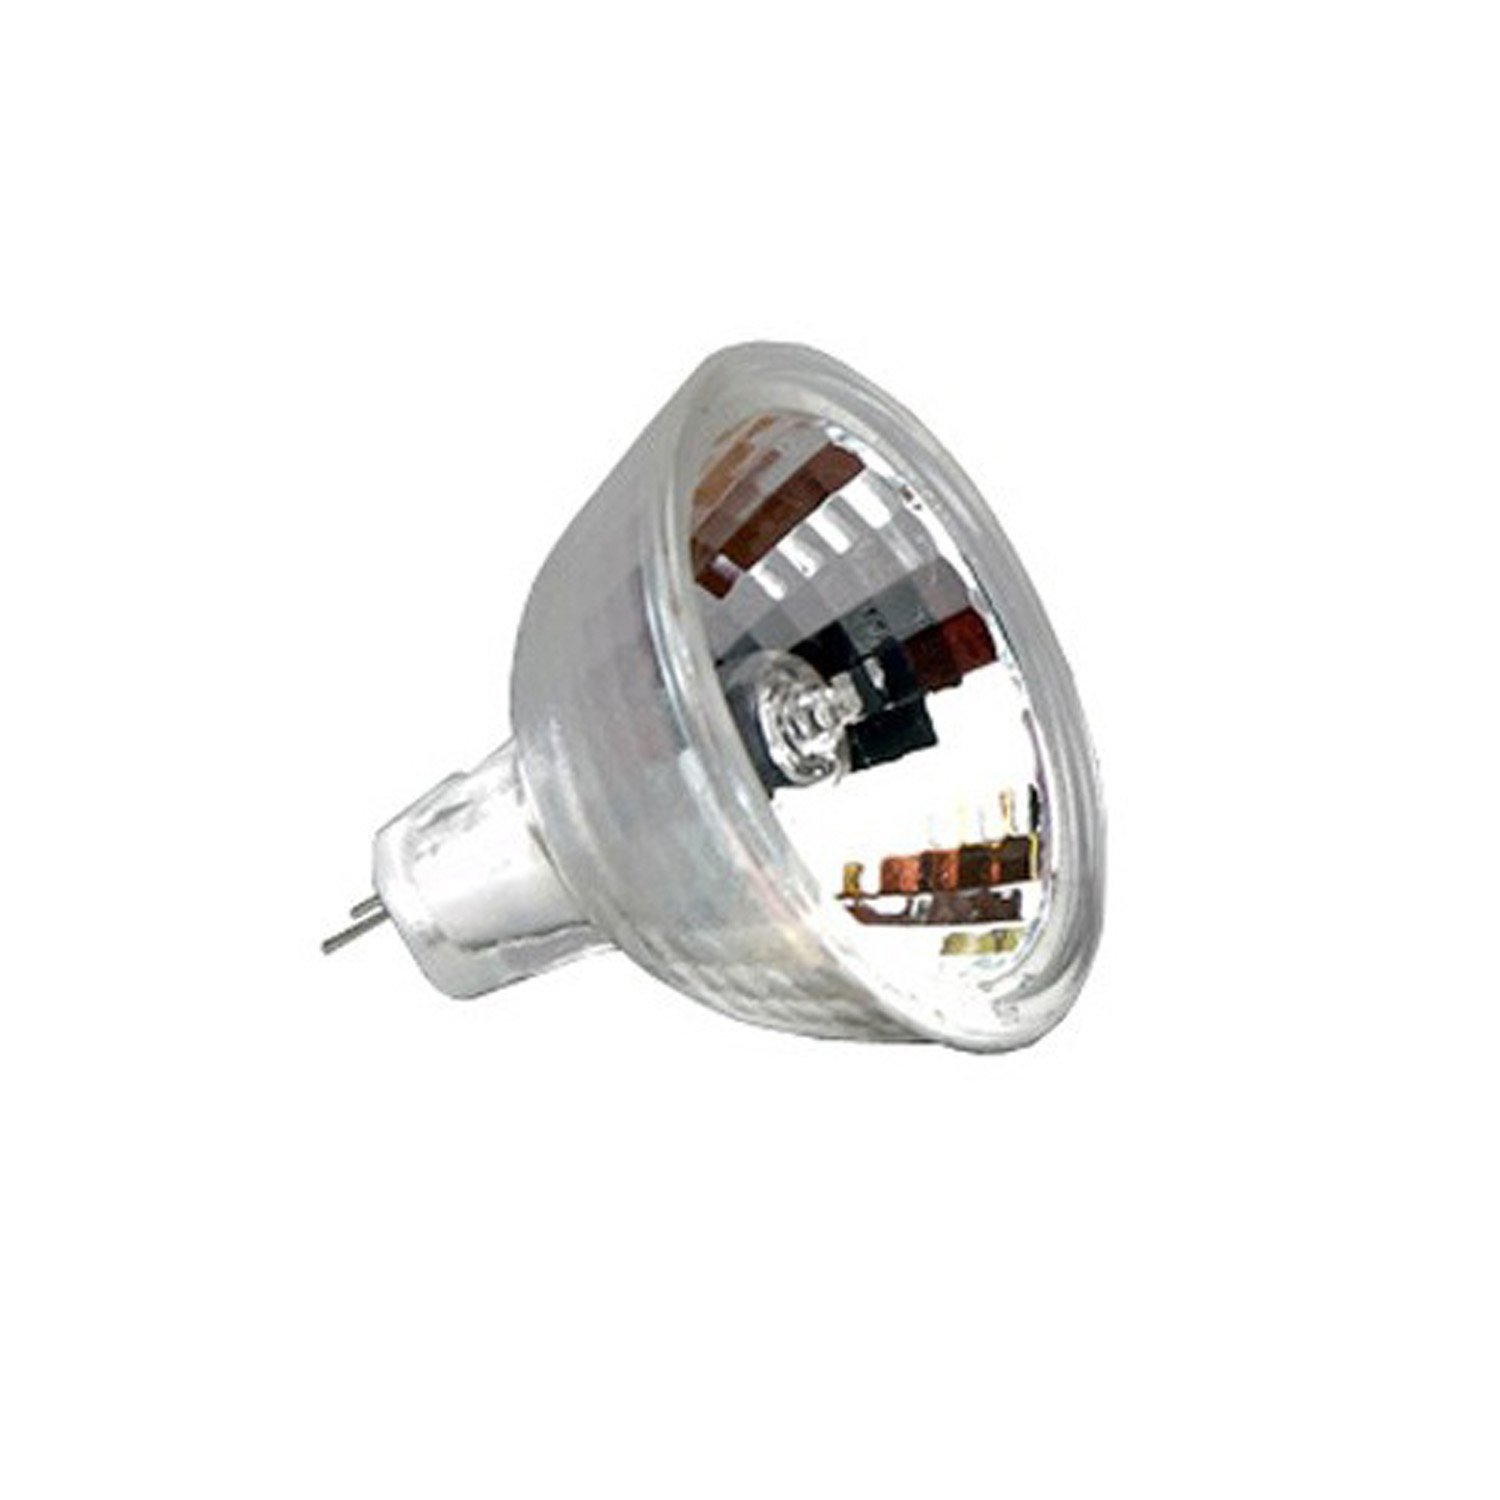 AmScope BHD 12V15W 12V 15W Halogen Bulb With Dome For Microscopes